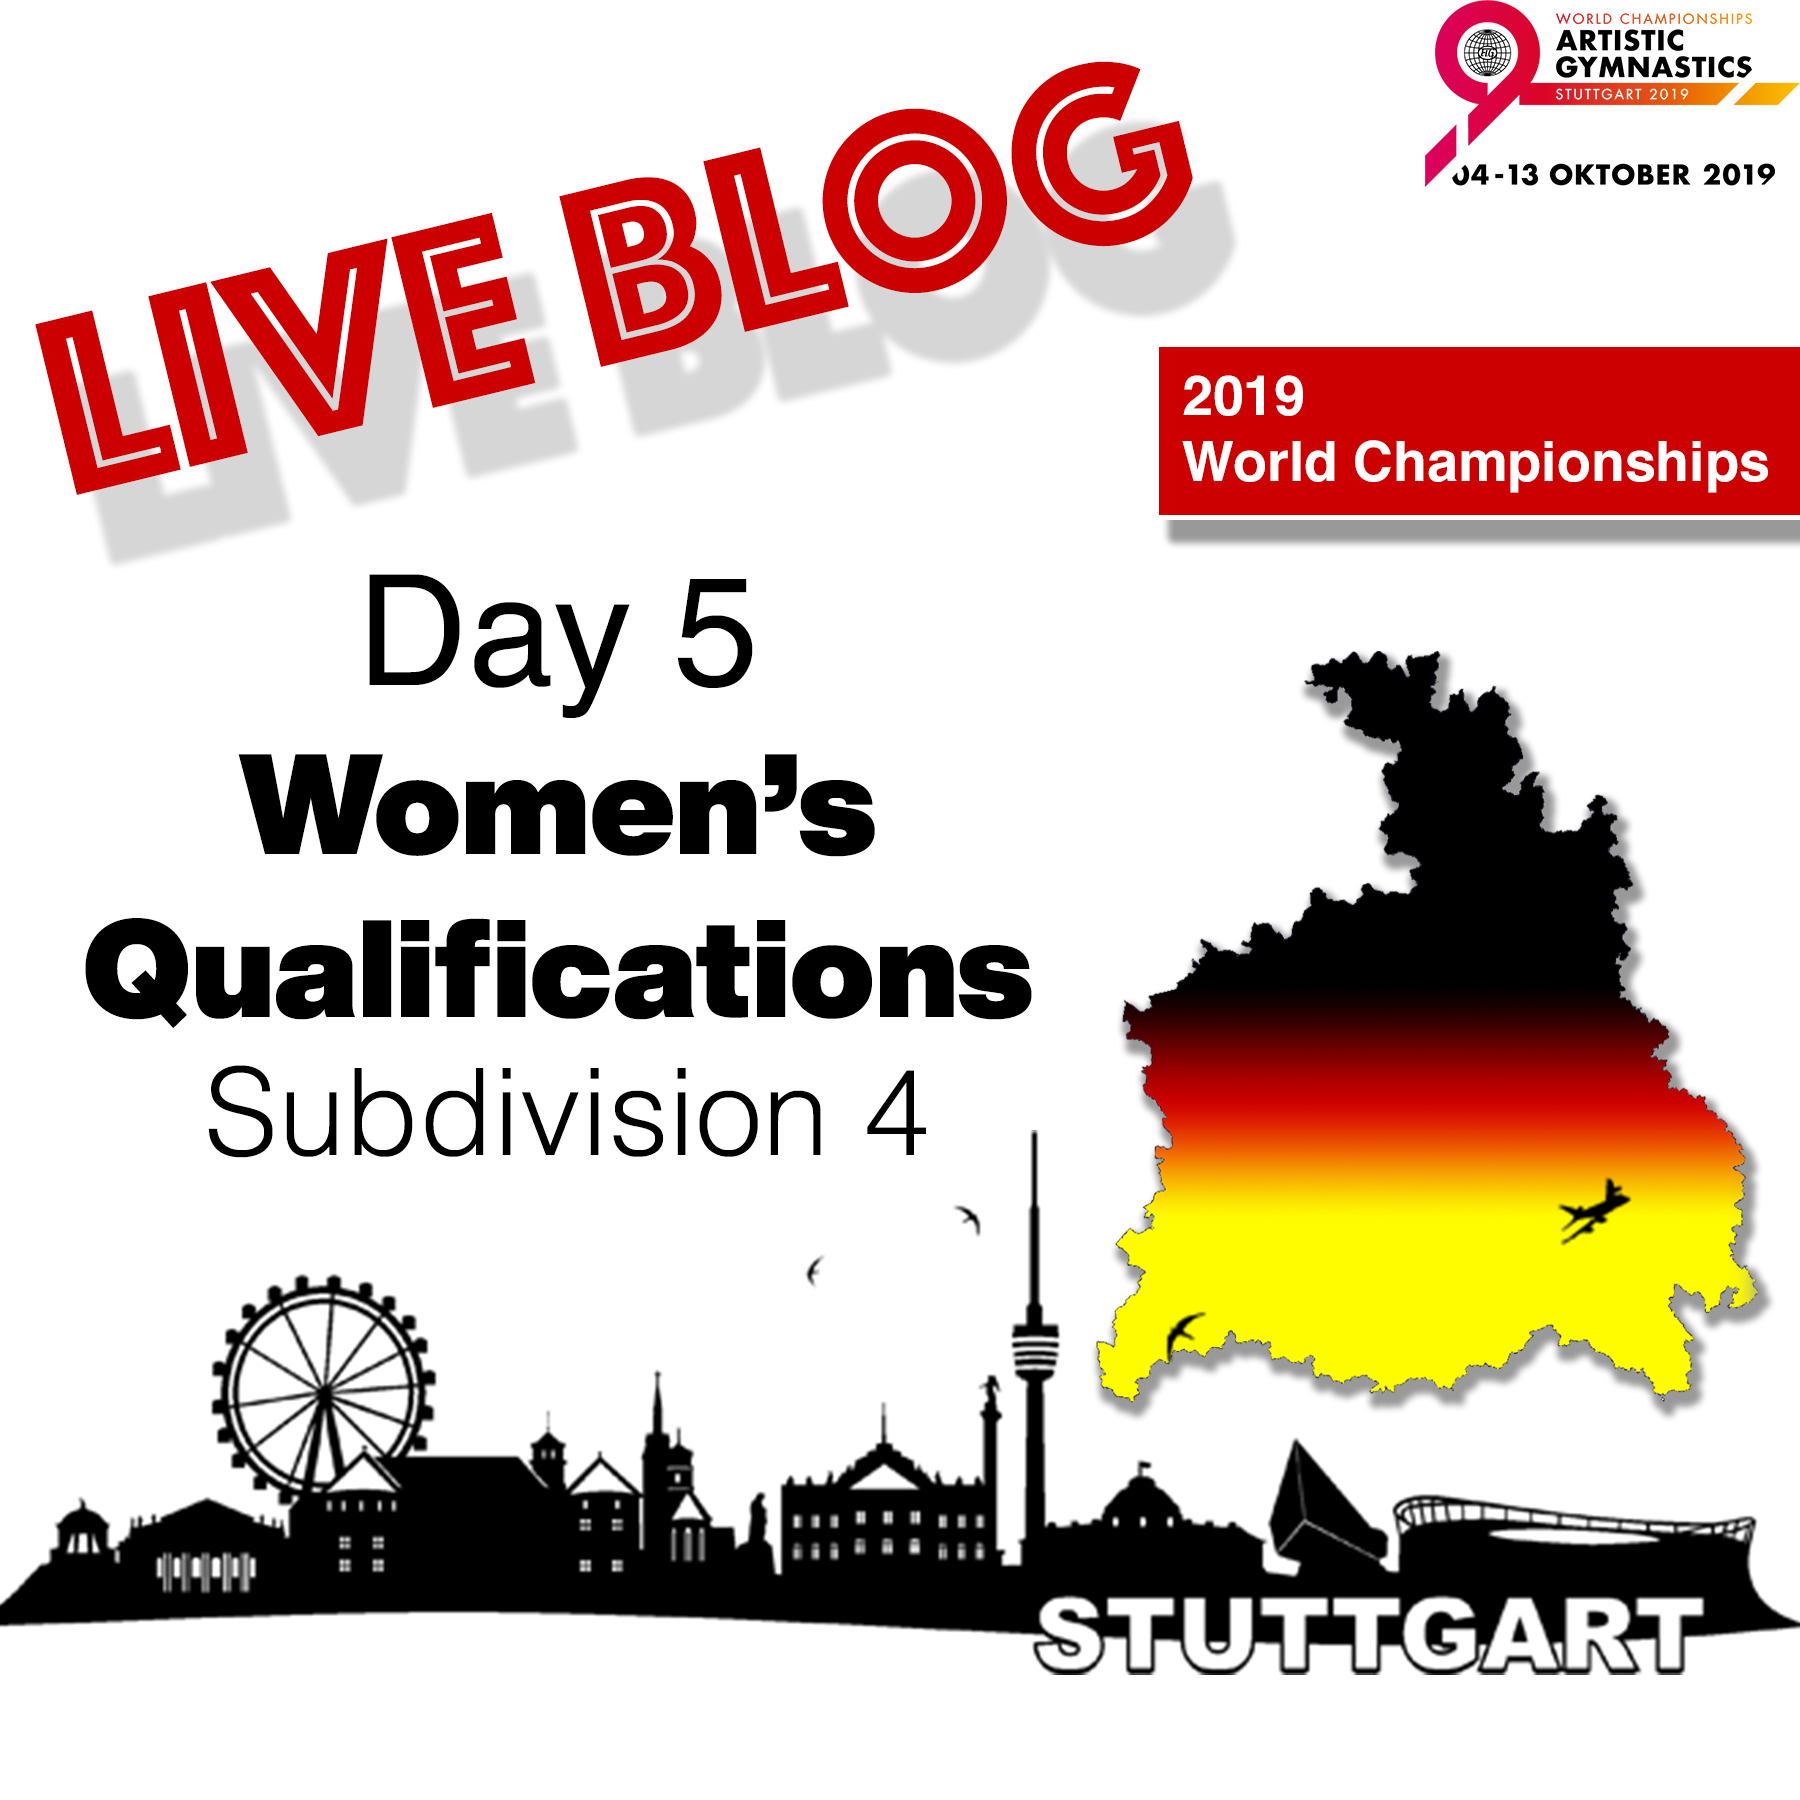 Live Blog: 2019 World Championships – WAG Qualifications – Sub Division 4, Oct. 4th